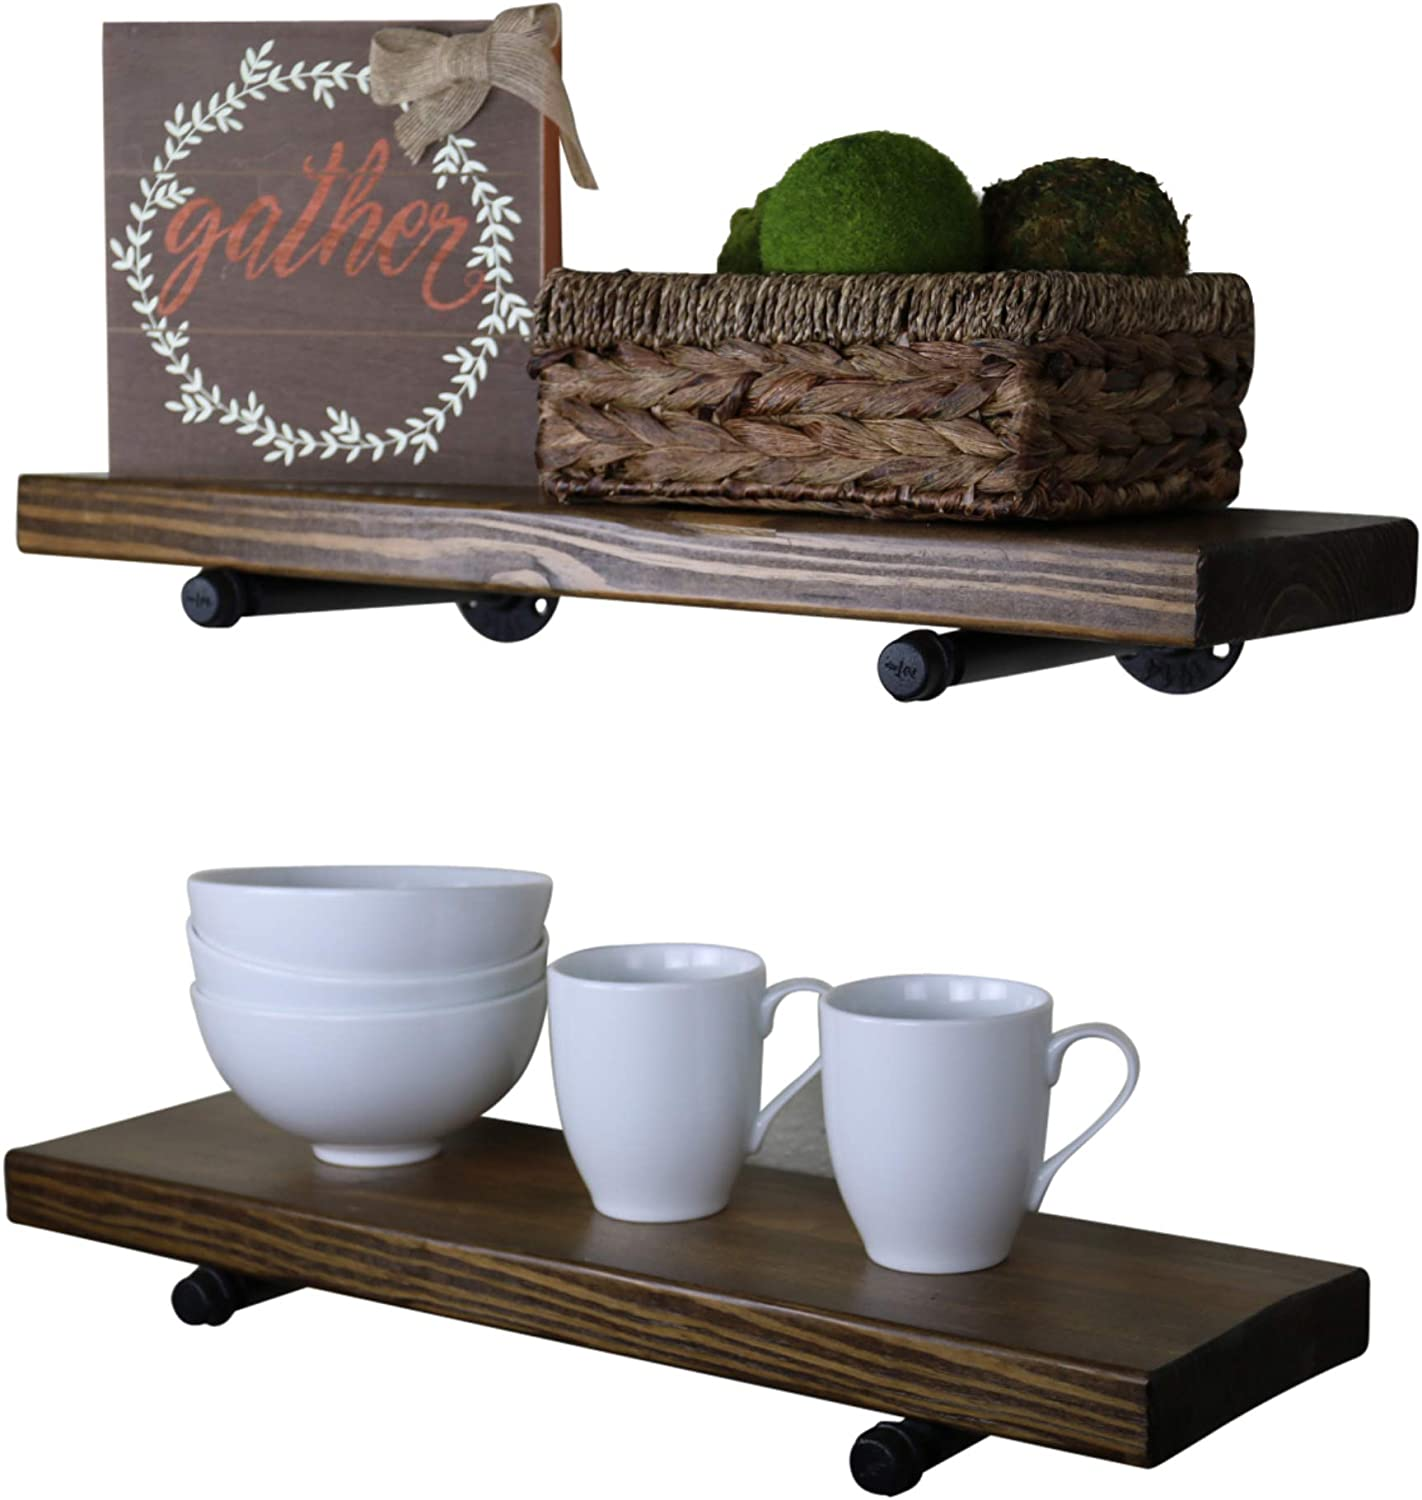 24 Inch, Barnwood Brown The Weathered Collection SDI Designs Rustic Farmhouse Floating Shelf Set